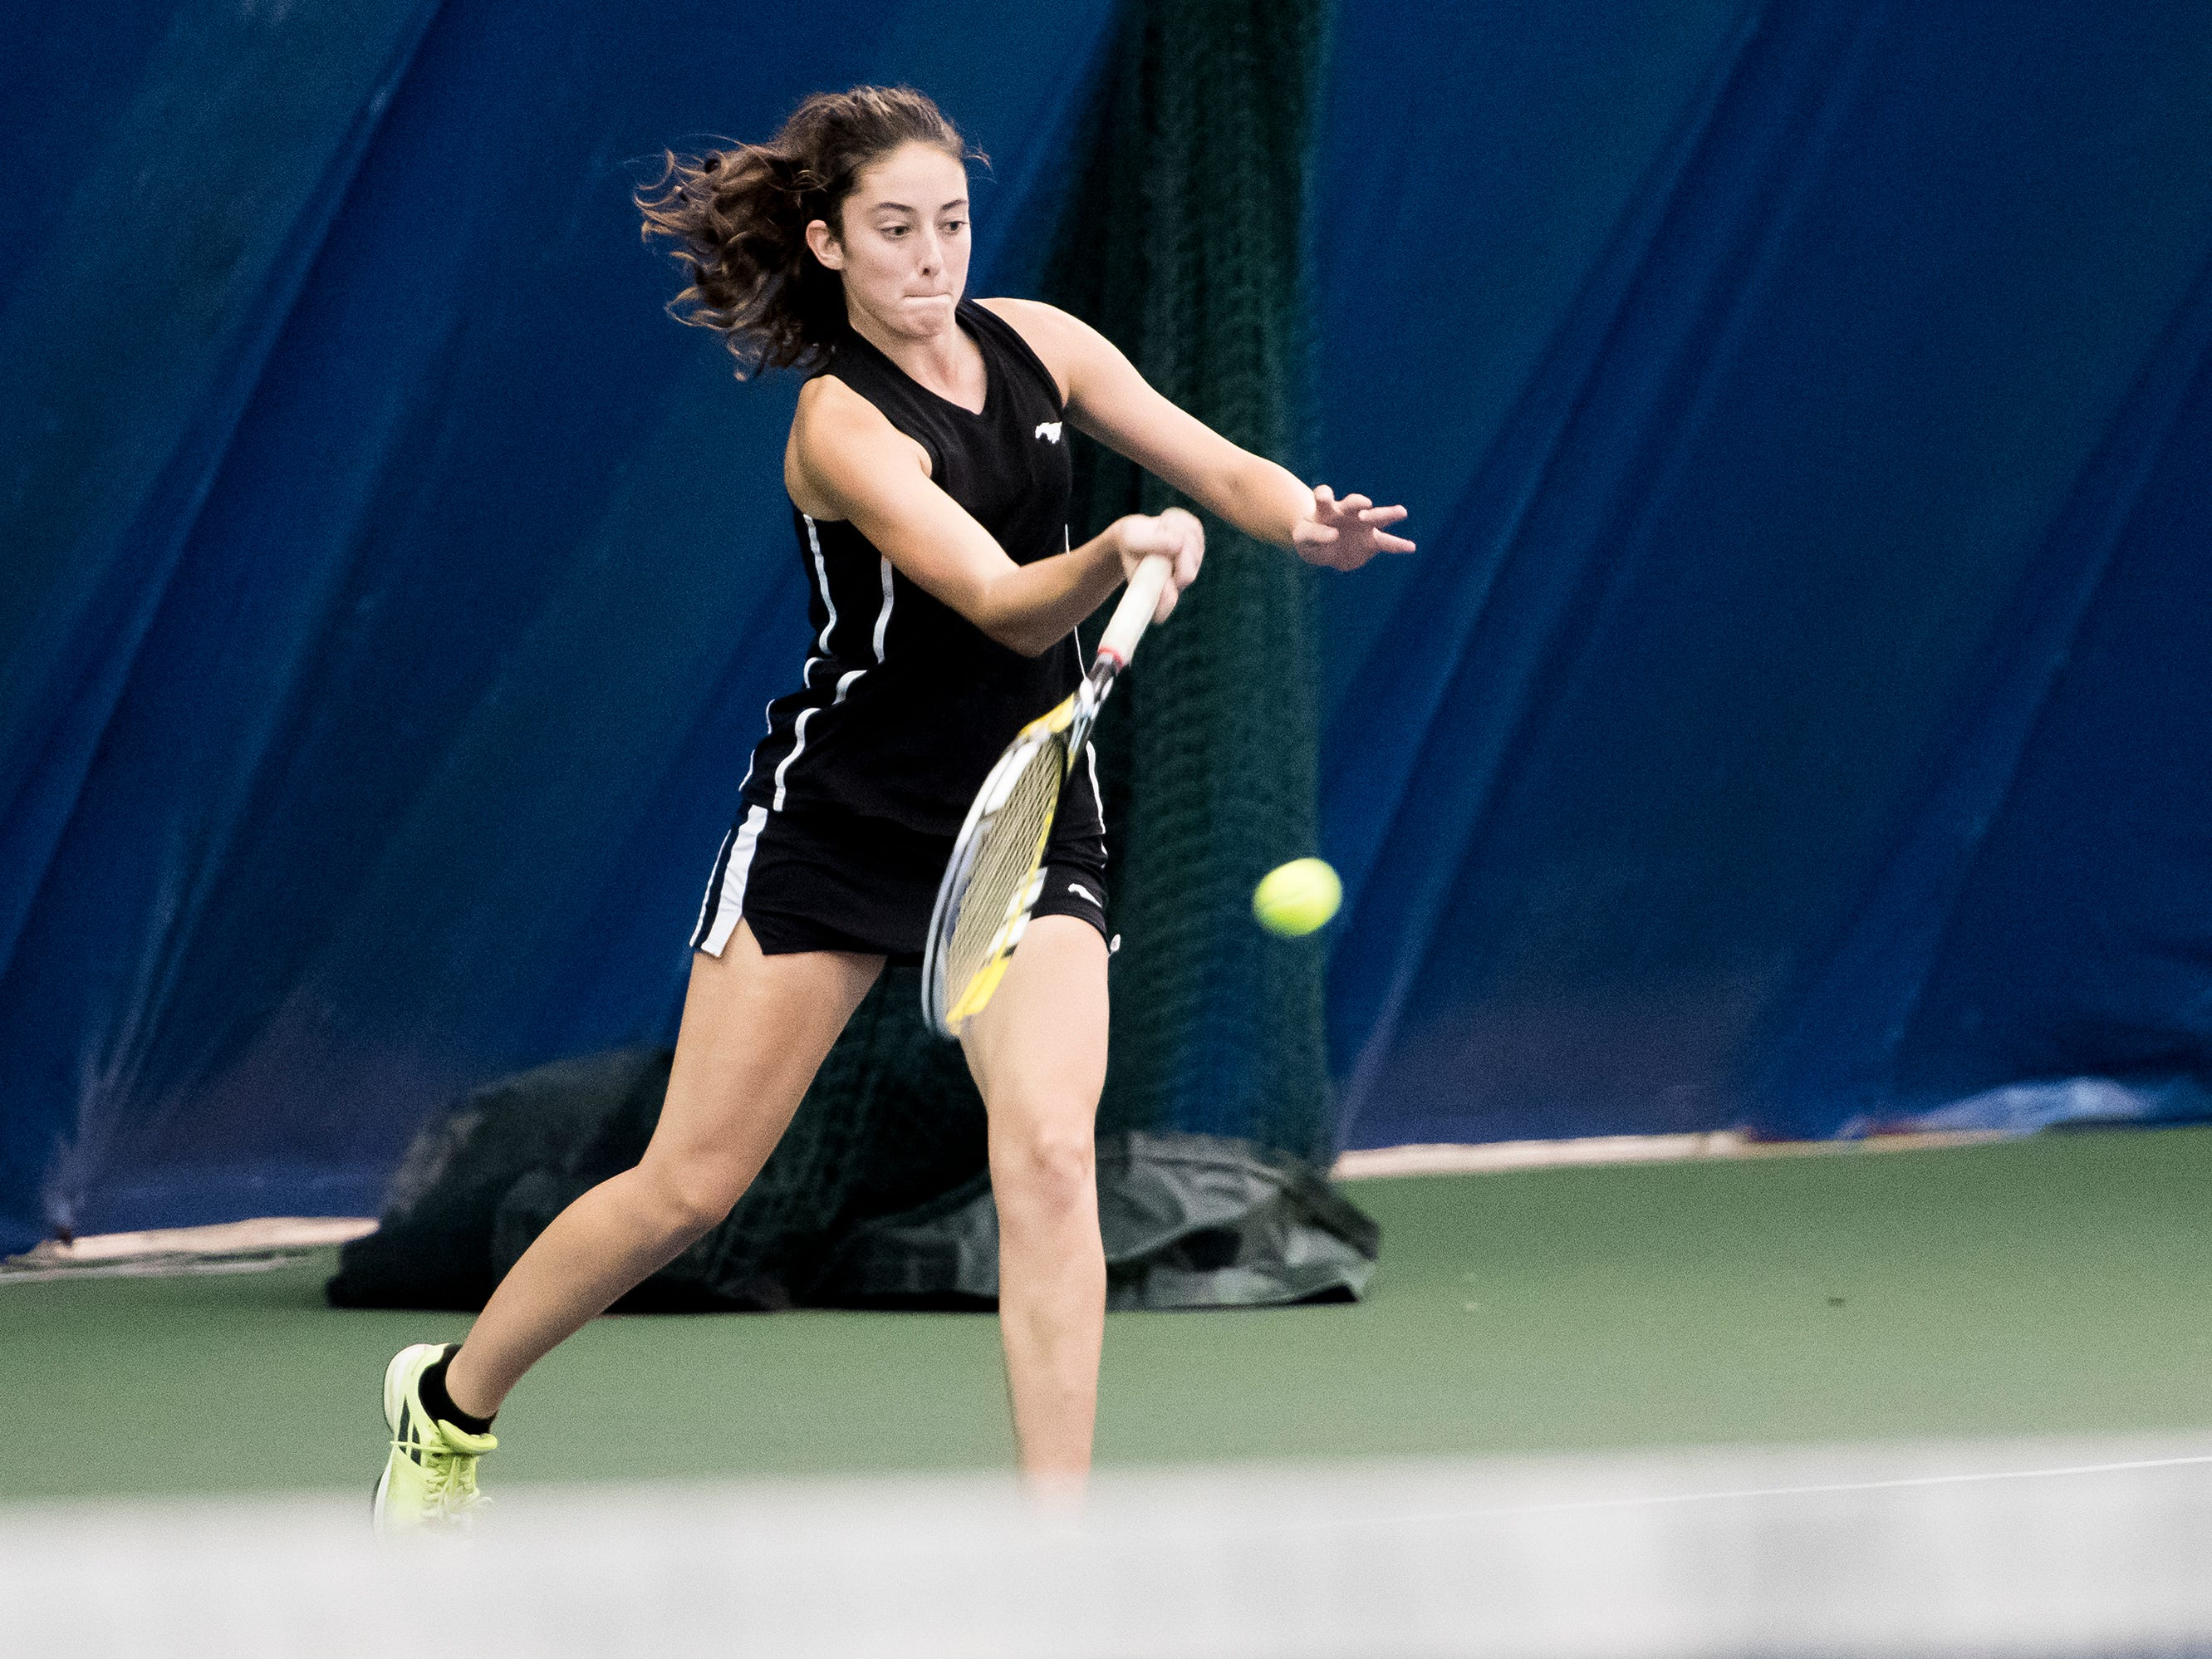 South Western's Michaela Sentz returns the ball to New Oxford's Kamdyn Balko during the championship match in the YAIAA 3A singles tournament at Wisehaven Tennis Center in York on October 6, 2018. Sentz won 6-7 (7-9), 6-0, 6-3.